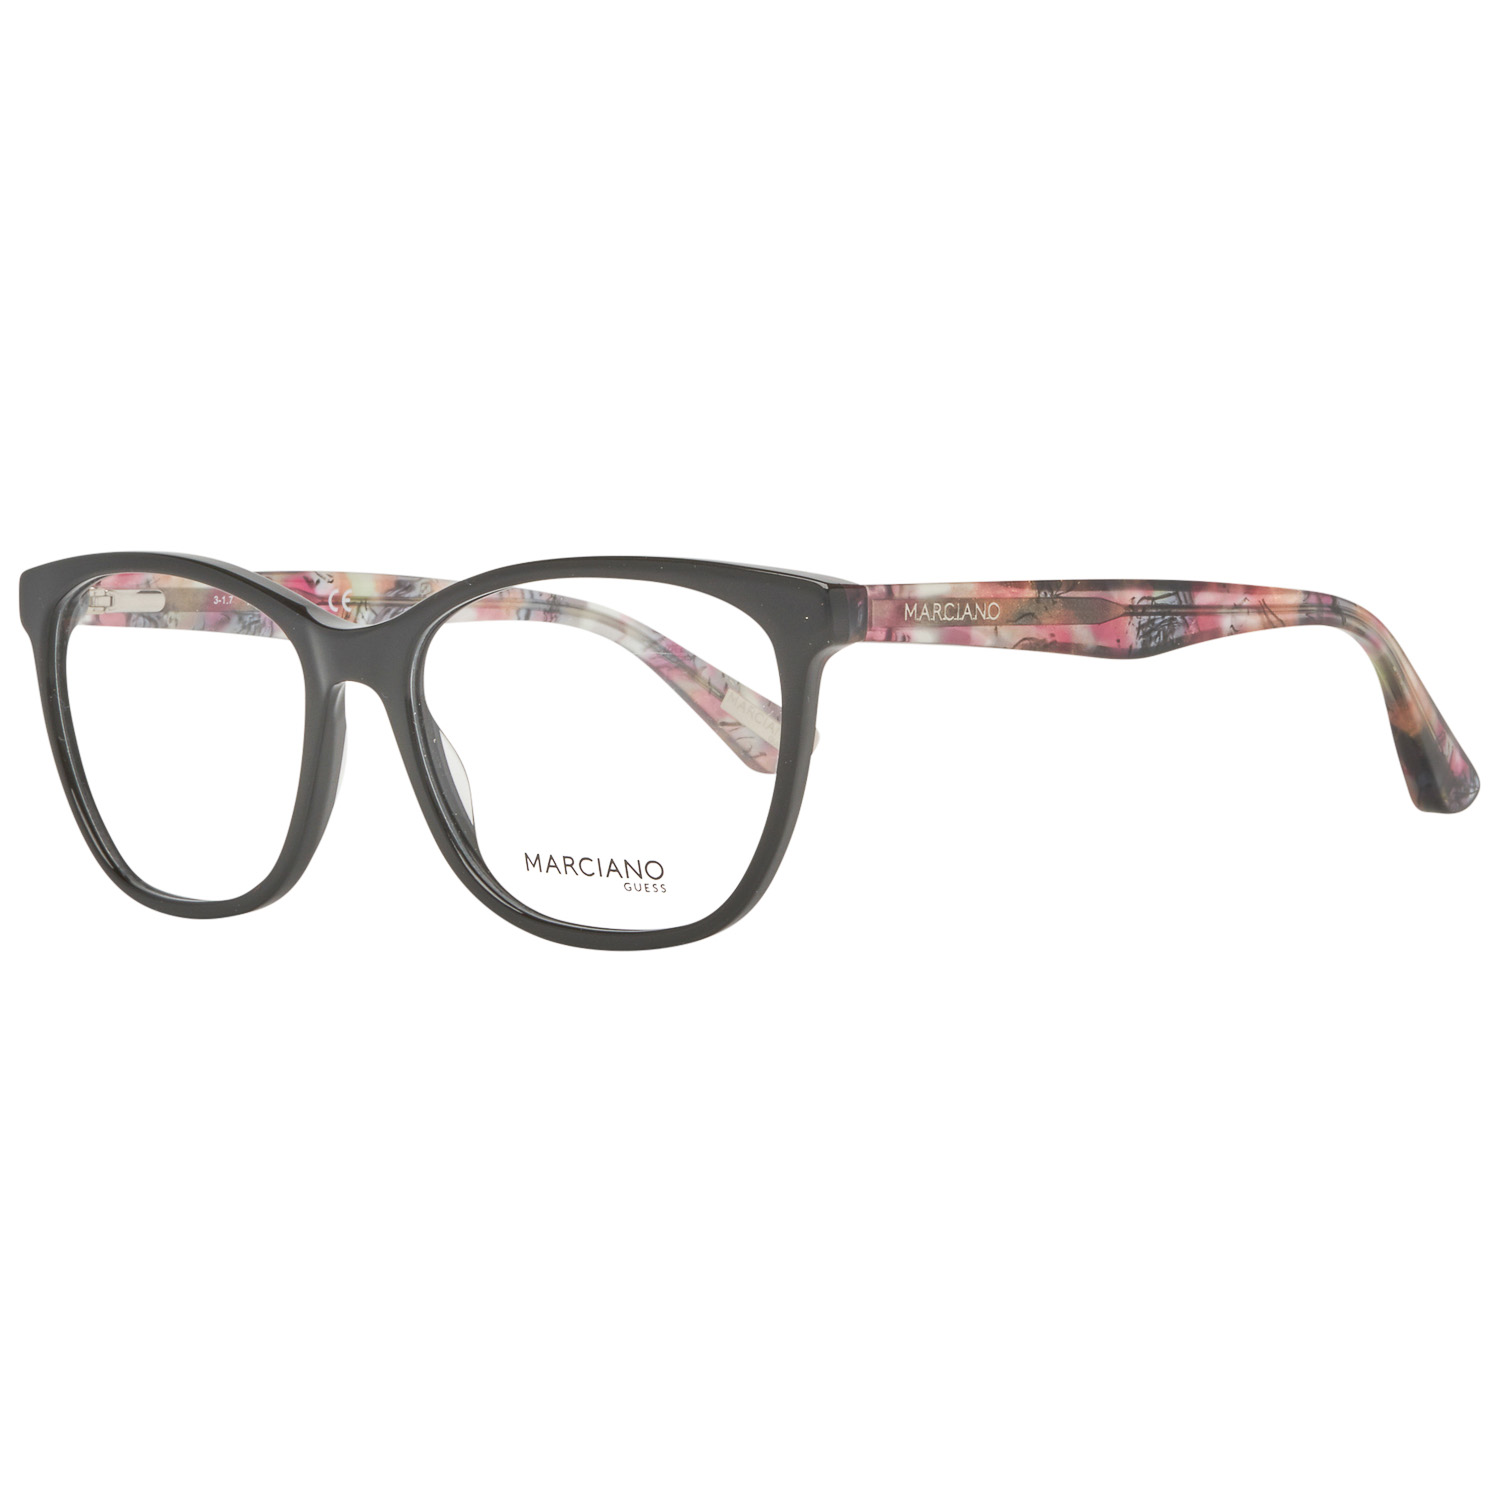 Guess by Marciano Optical Frame GM0315 001 52 Black